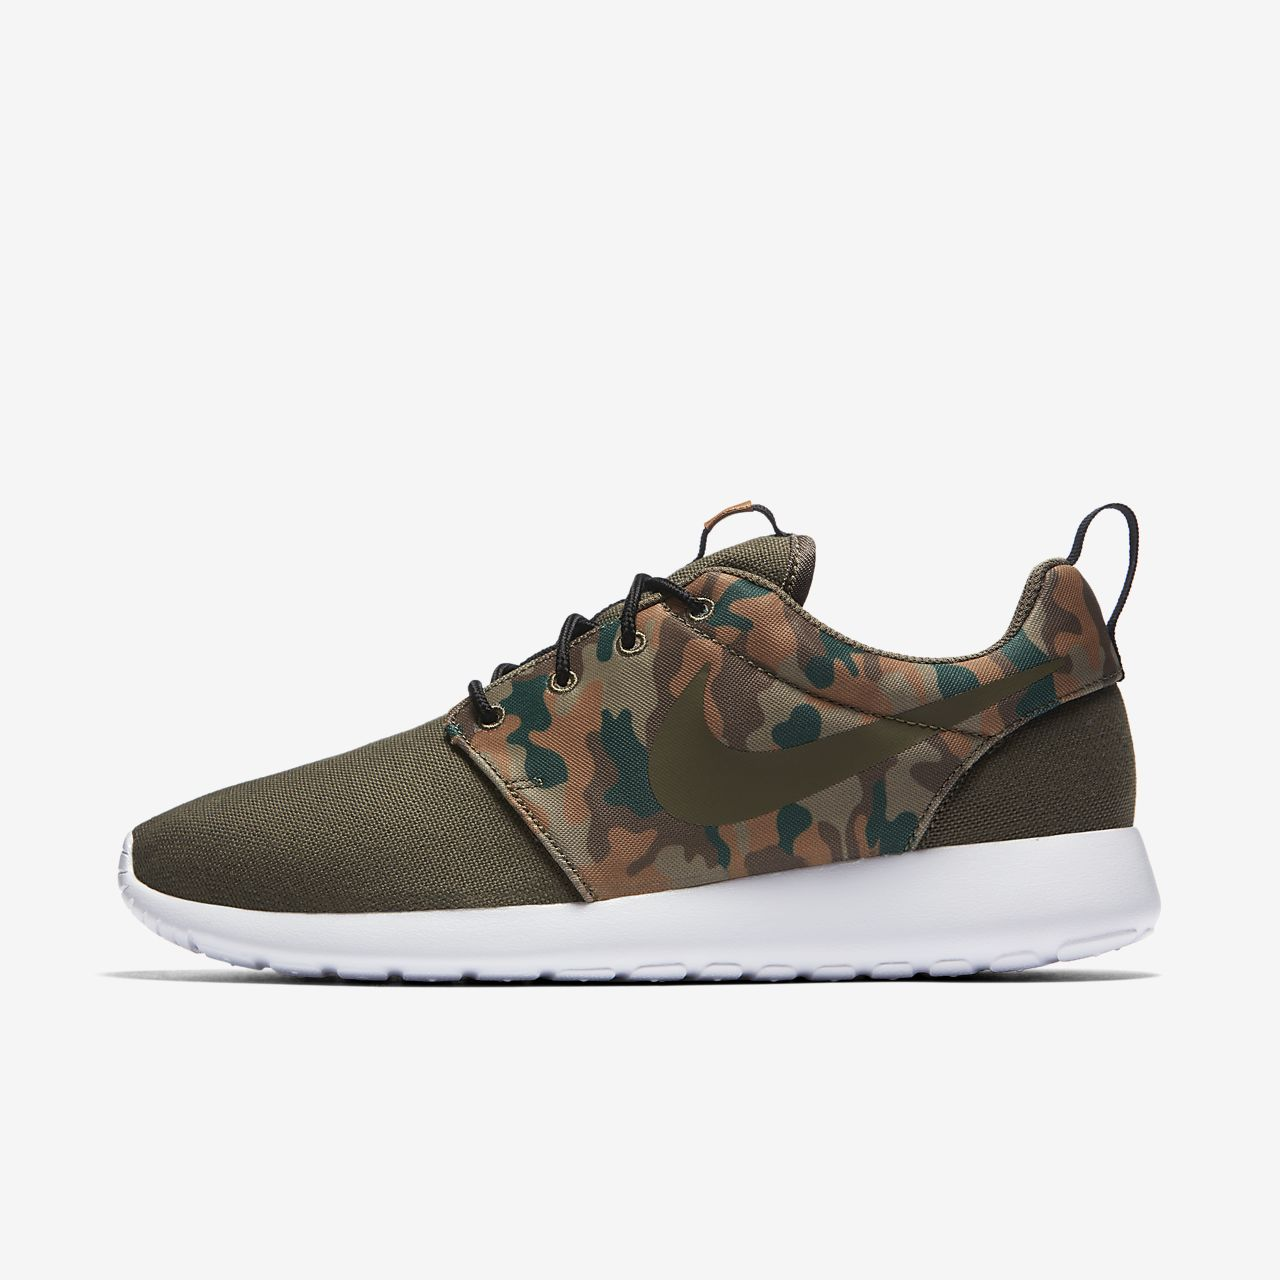 2cd02f67d63d Nike Roshe One SE Men s Shoe. Nike.com